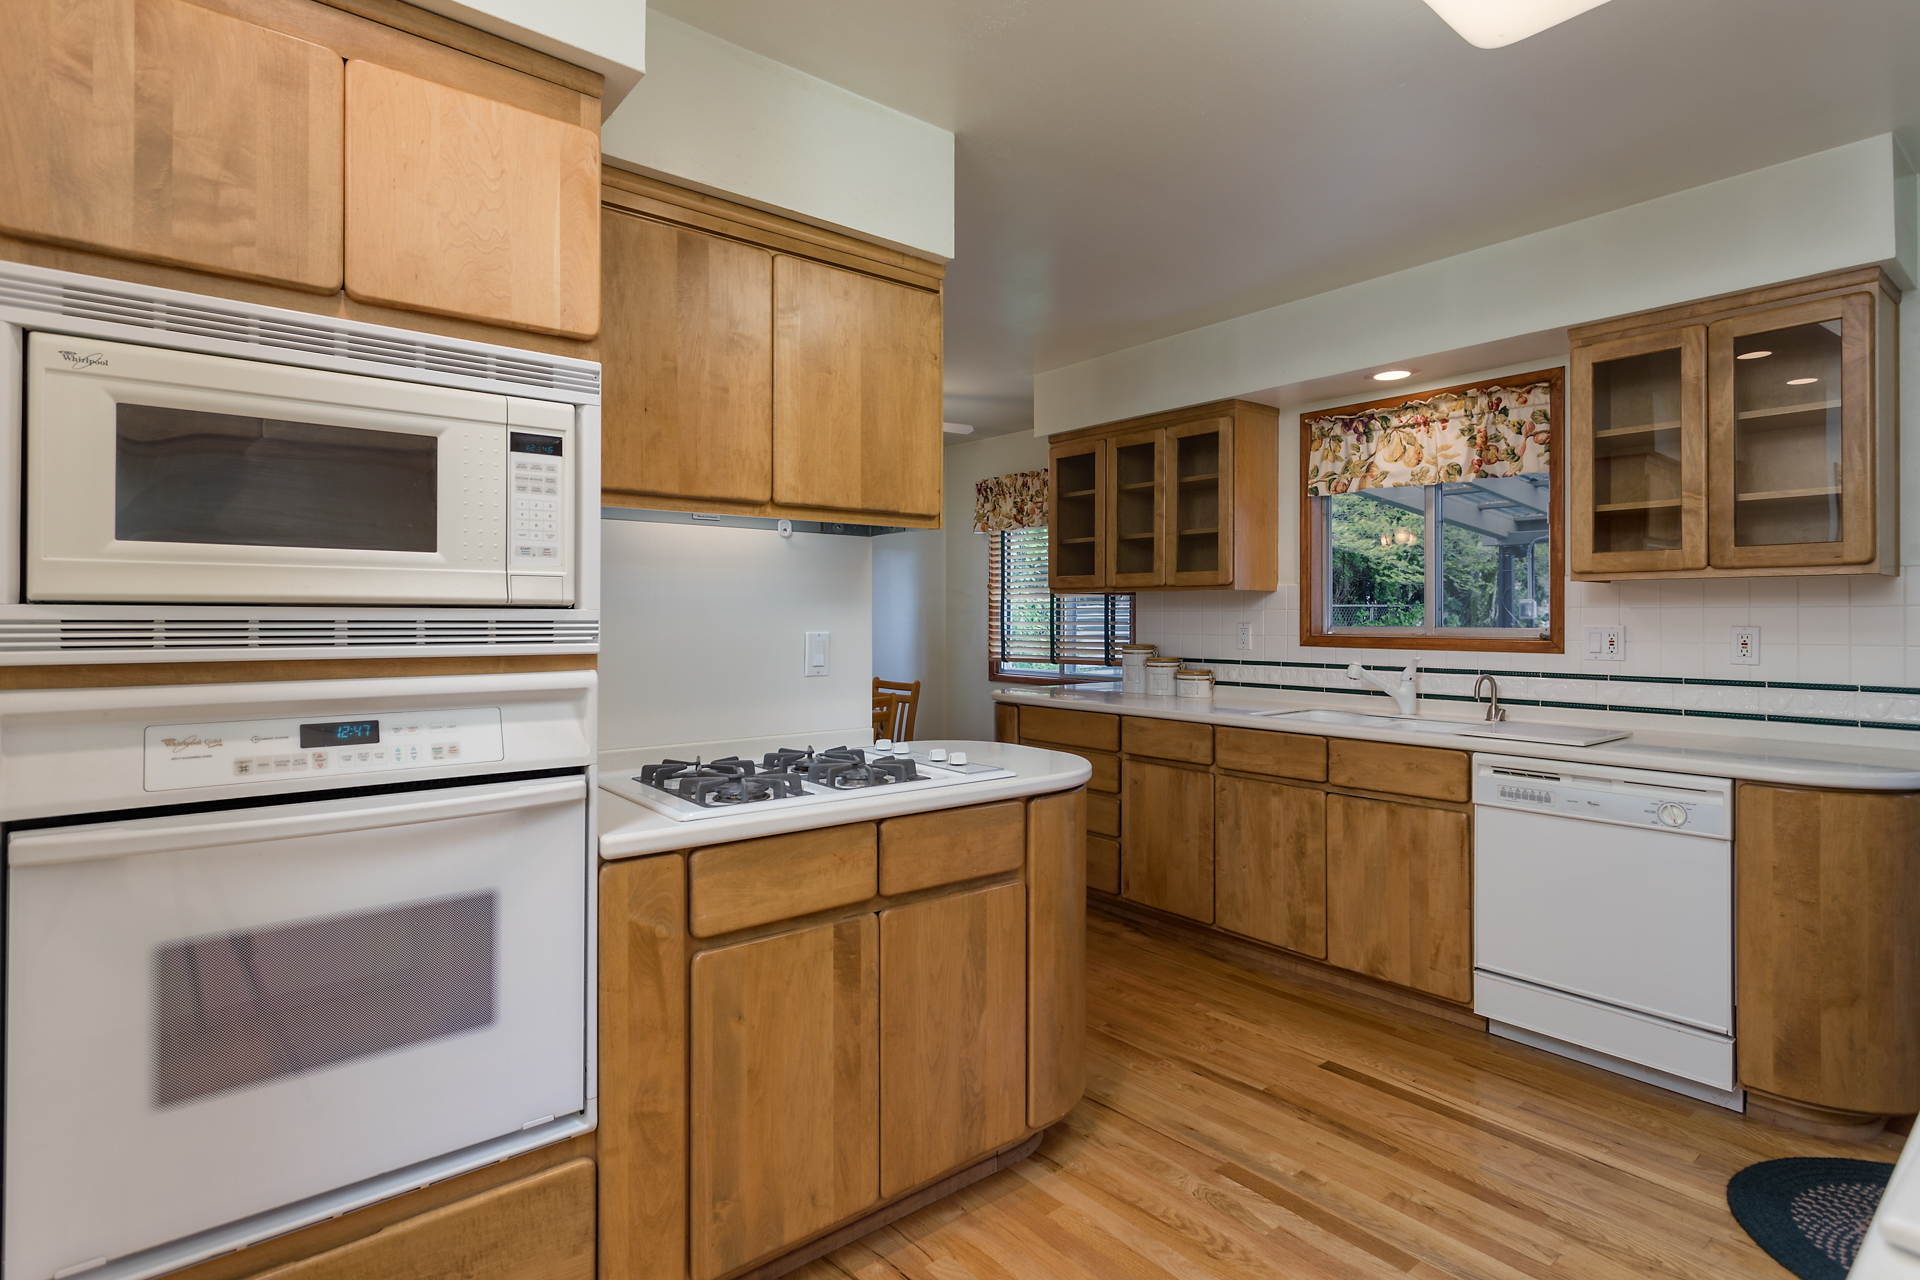 Kitchen with a generous amount of cabinet storage and counter space.